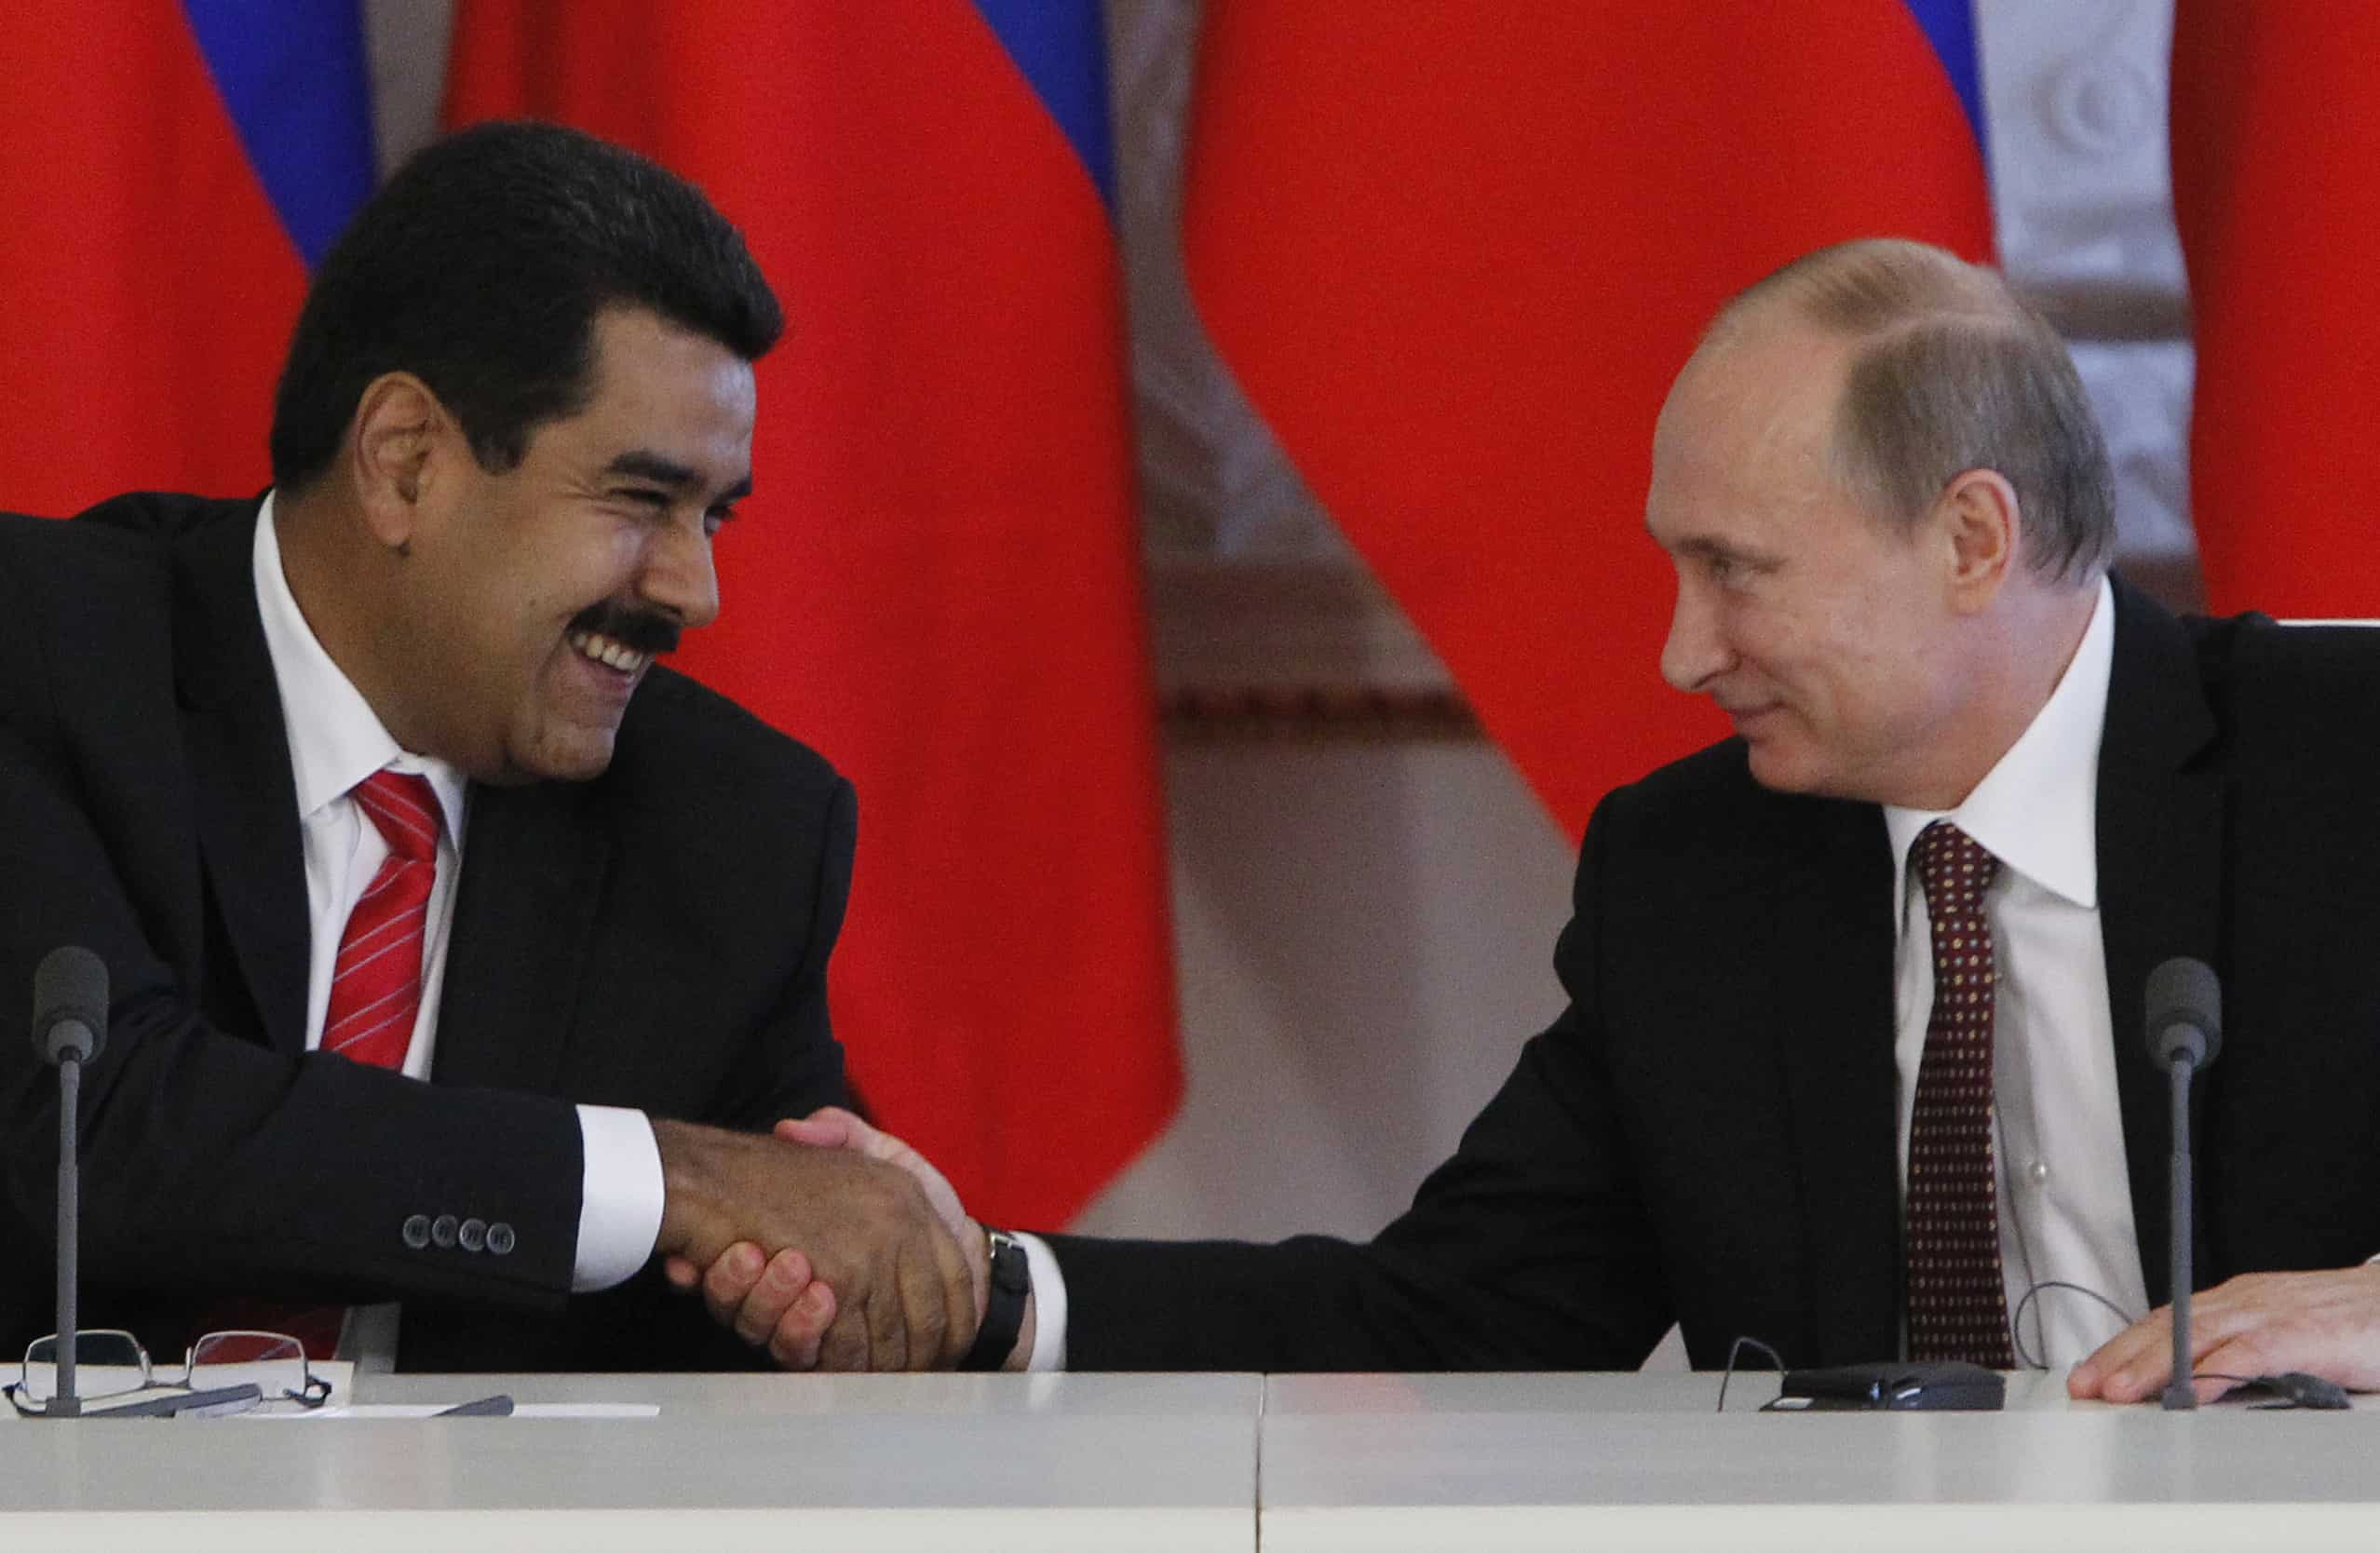 Russia President Vladimir Putin, right, and Venezuelan counterpart Nicolás Maduro